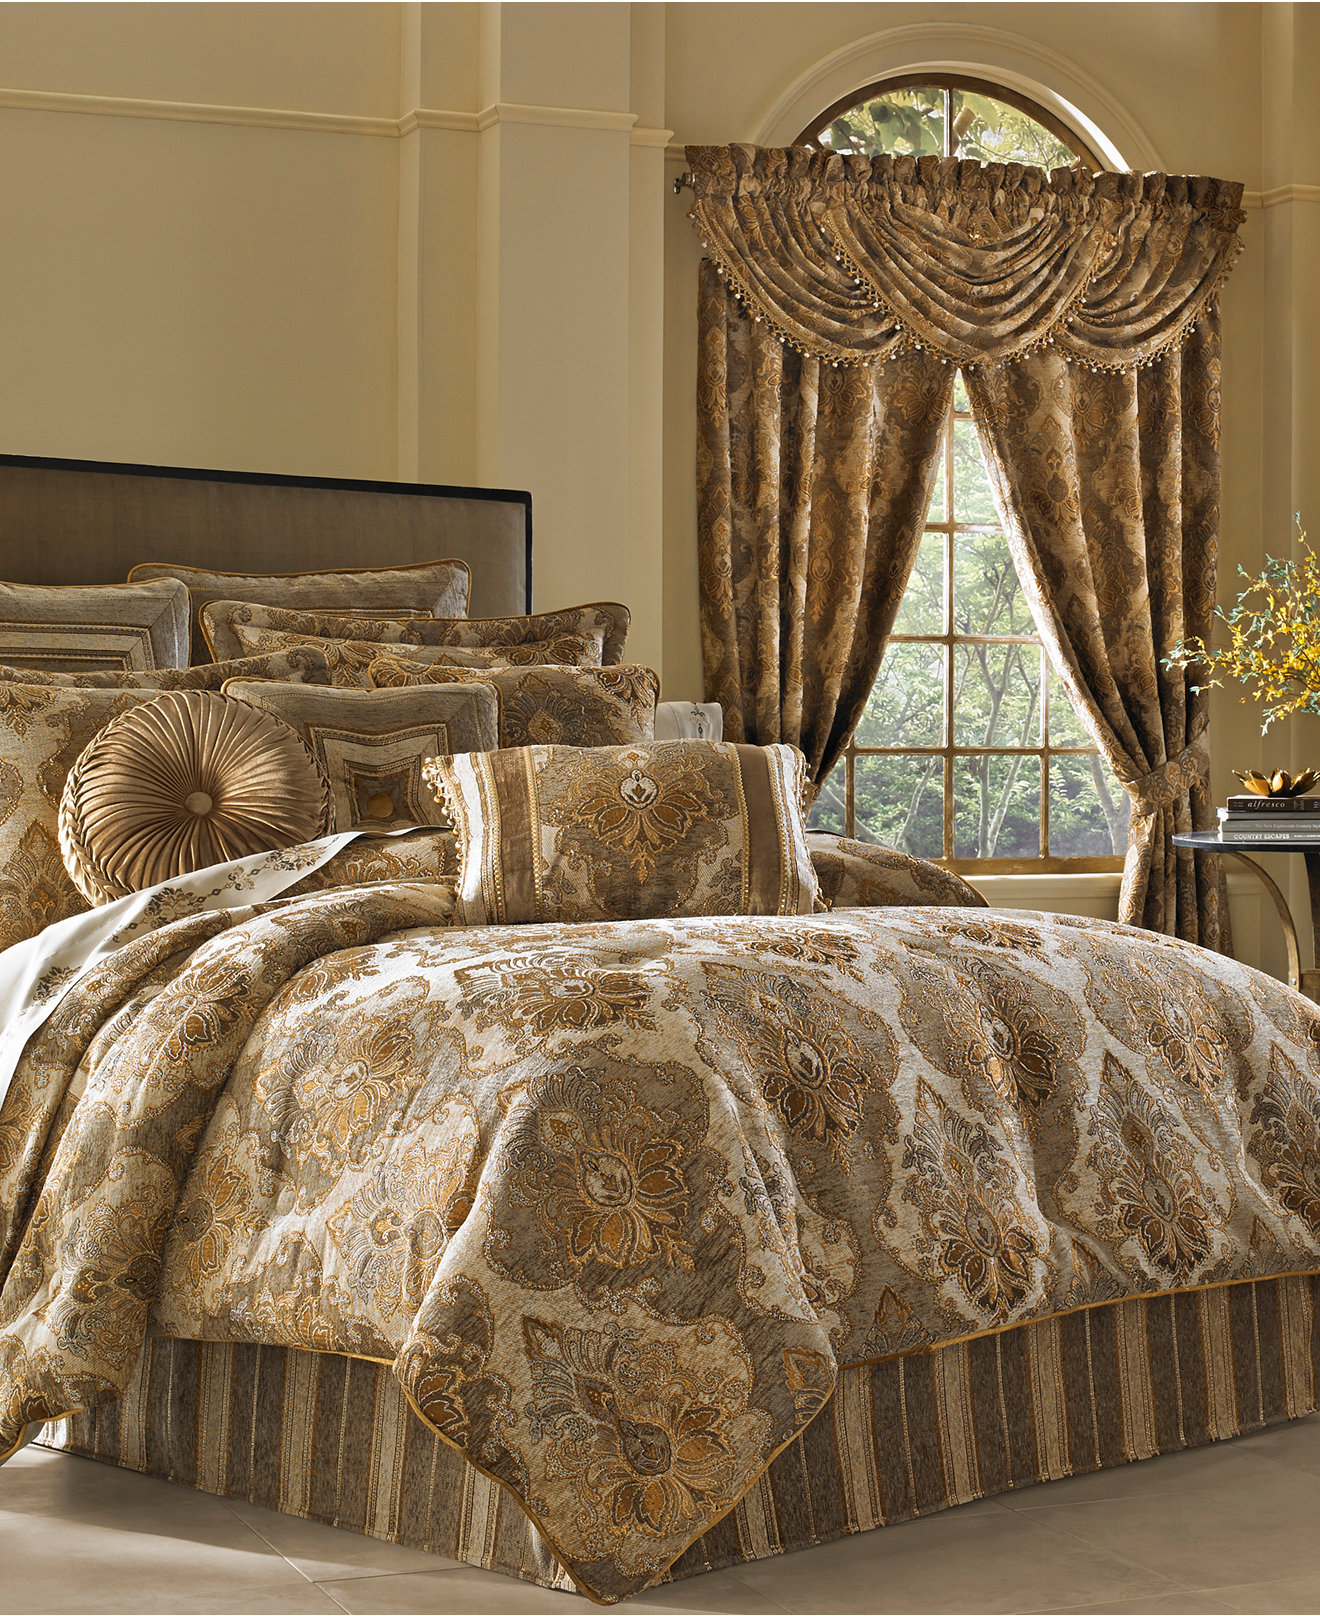 Macy Bedroom Furniture Closeout Closeout J Queen New York Woodbury Bedding Collection Bedding